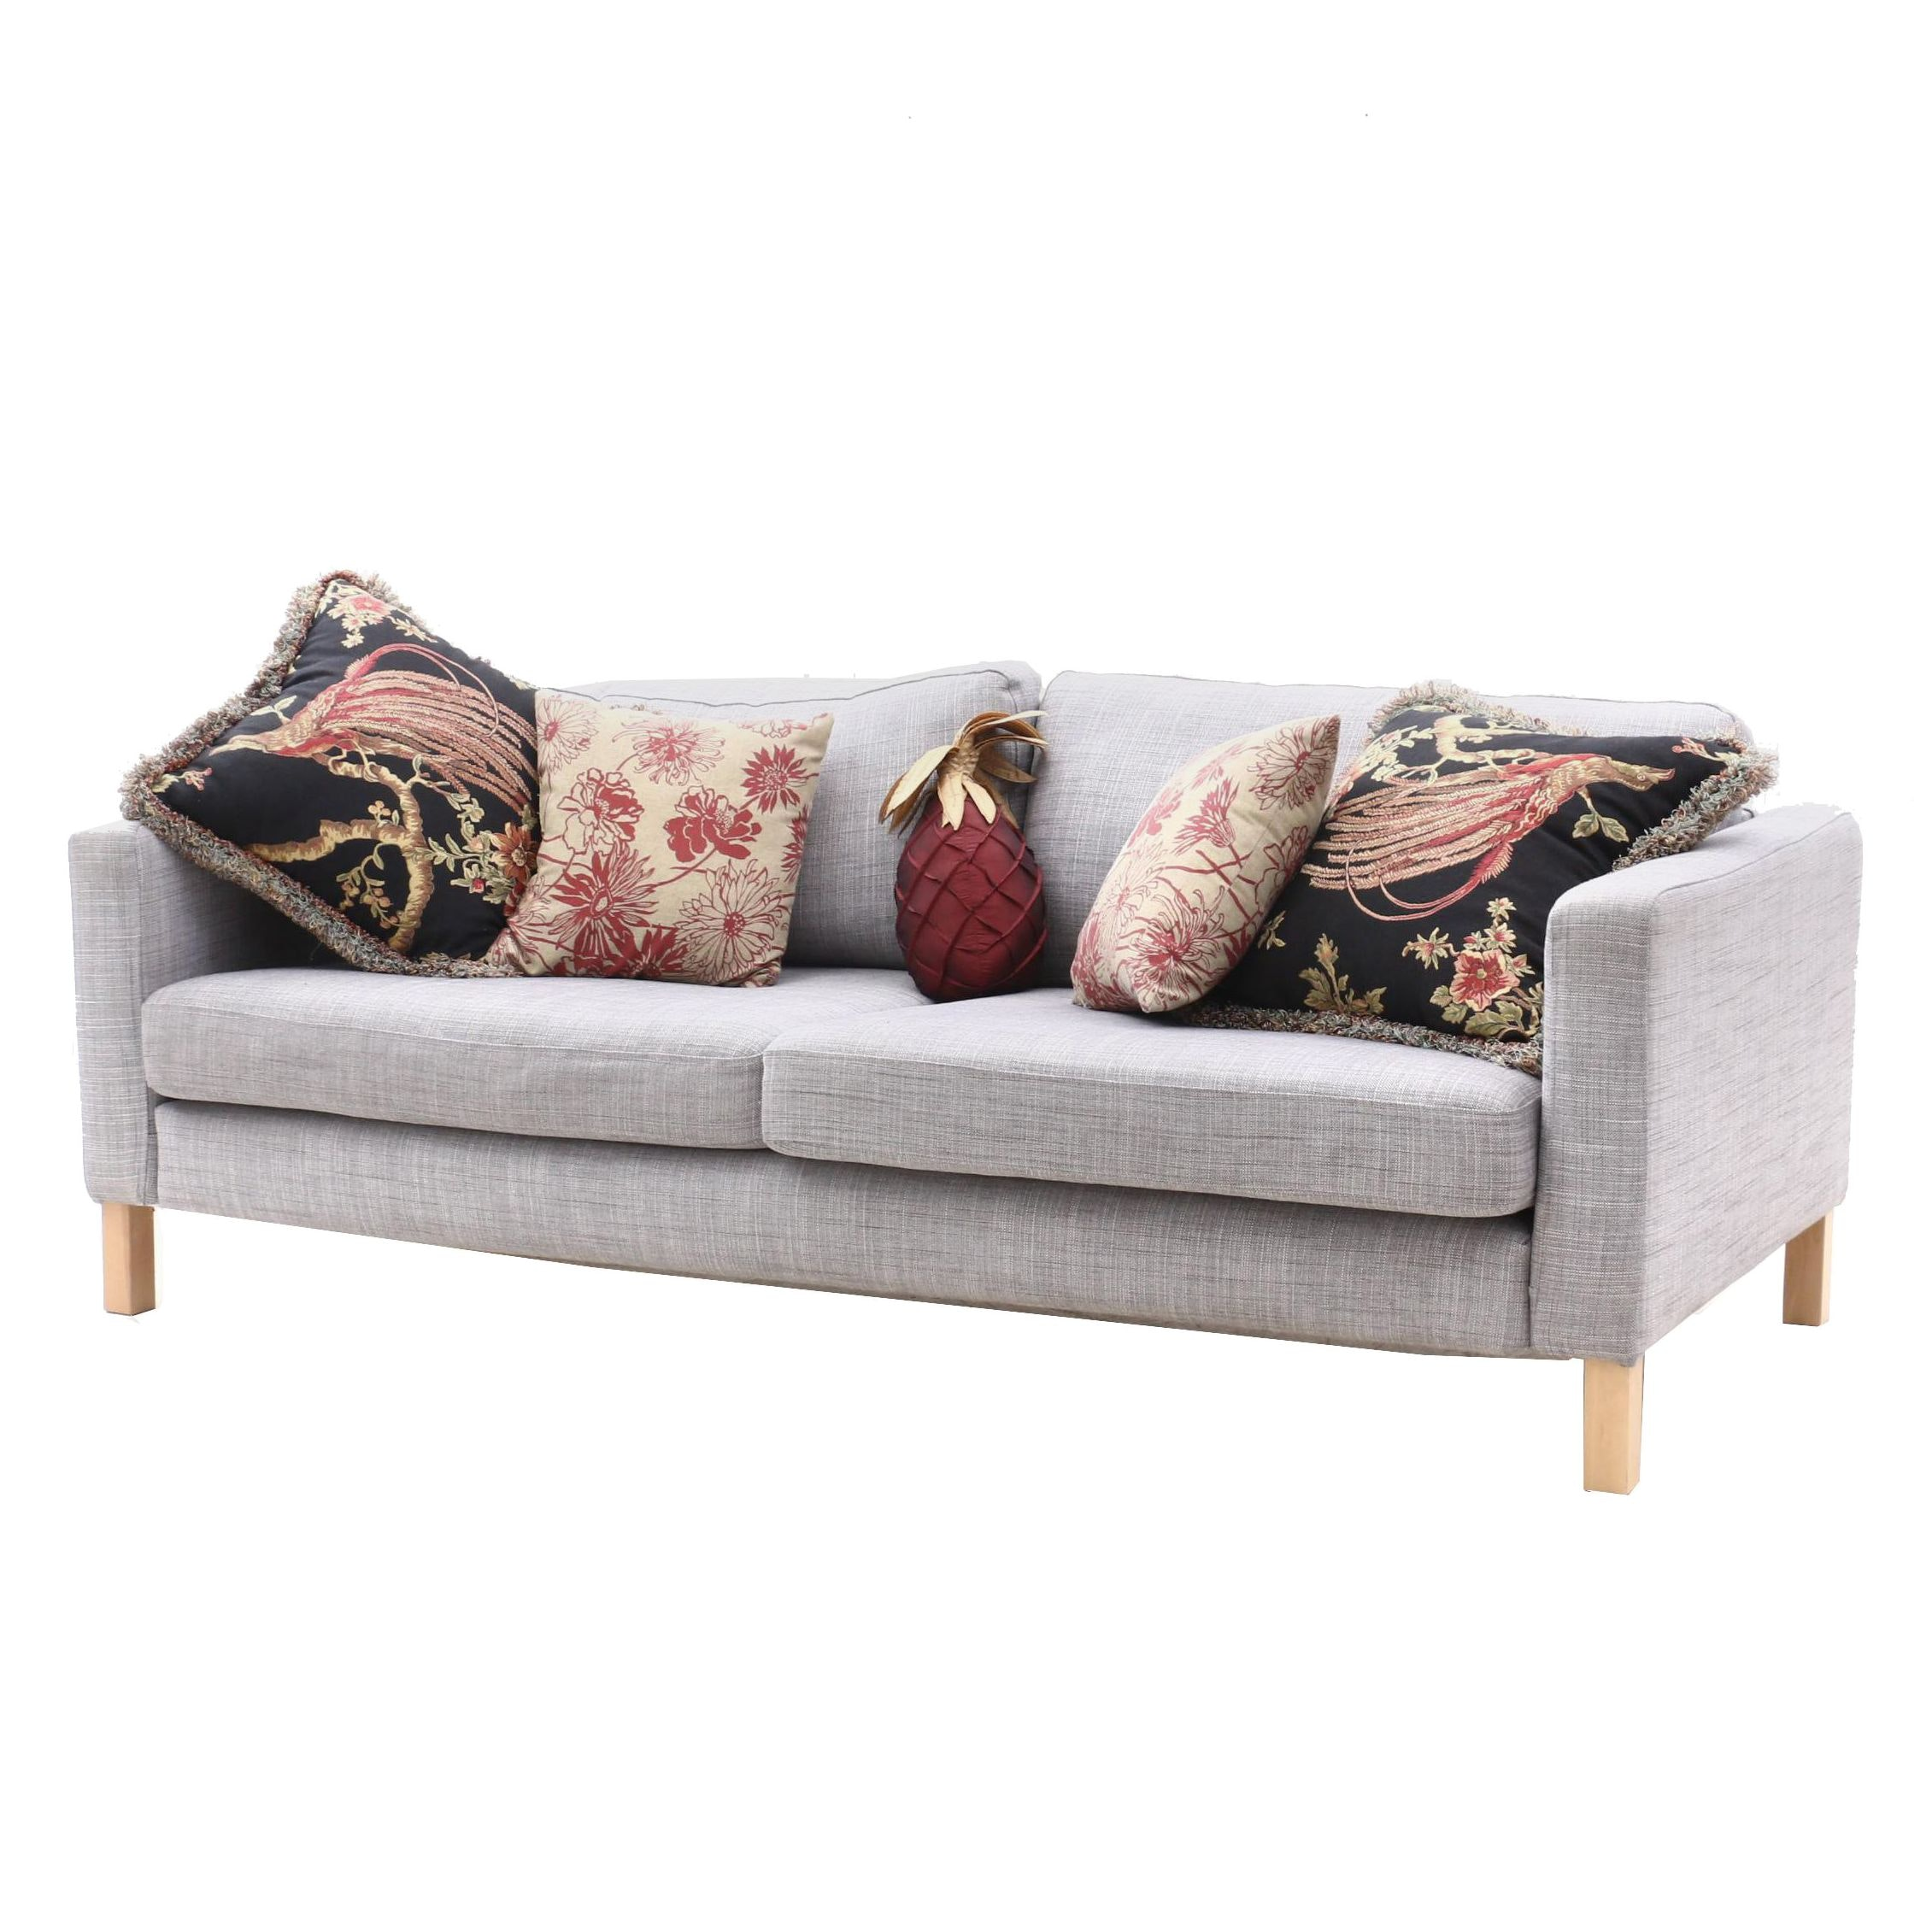 Contemporary Sofa with Throw Pillows By Ikea